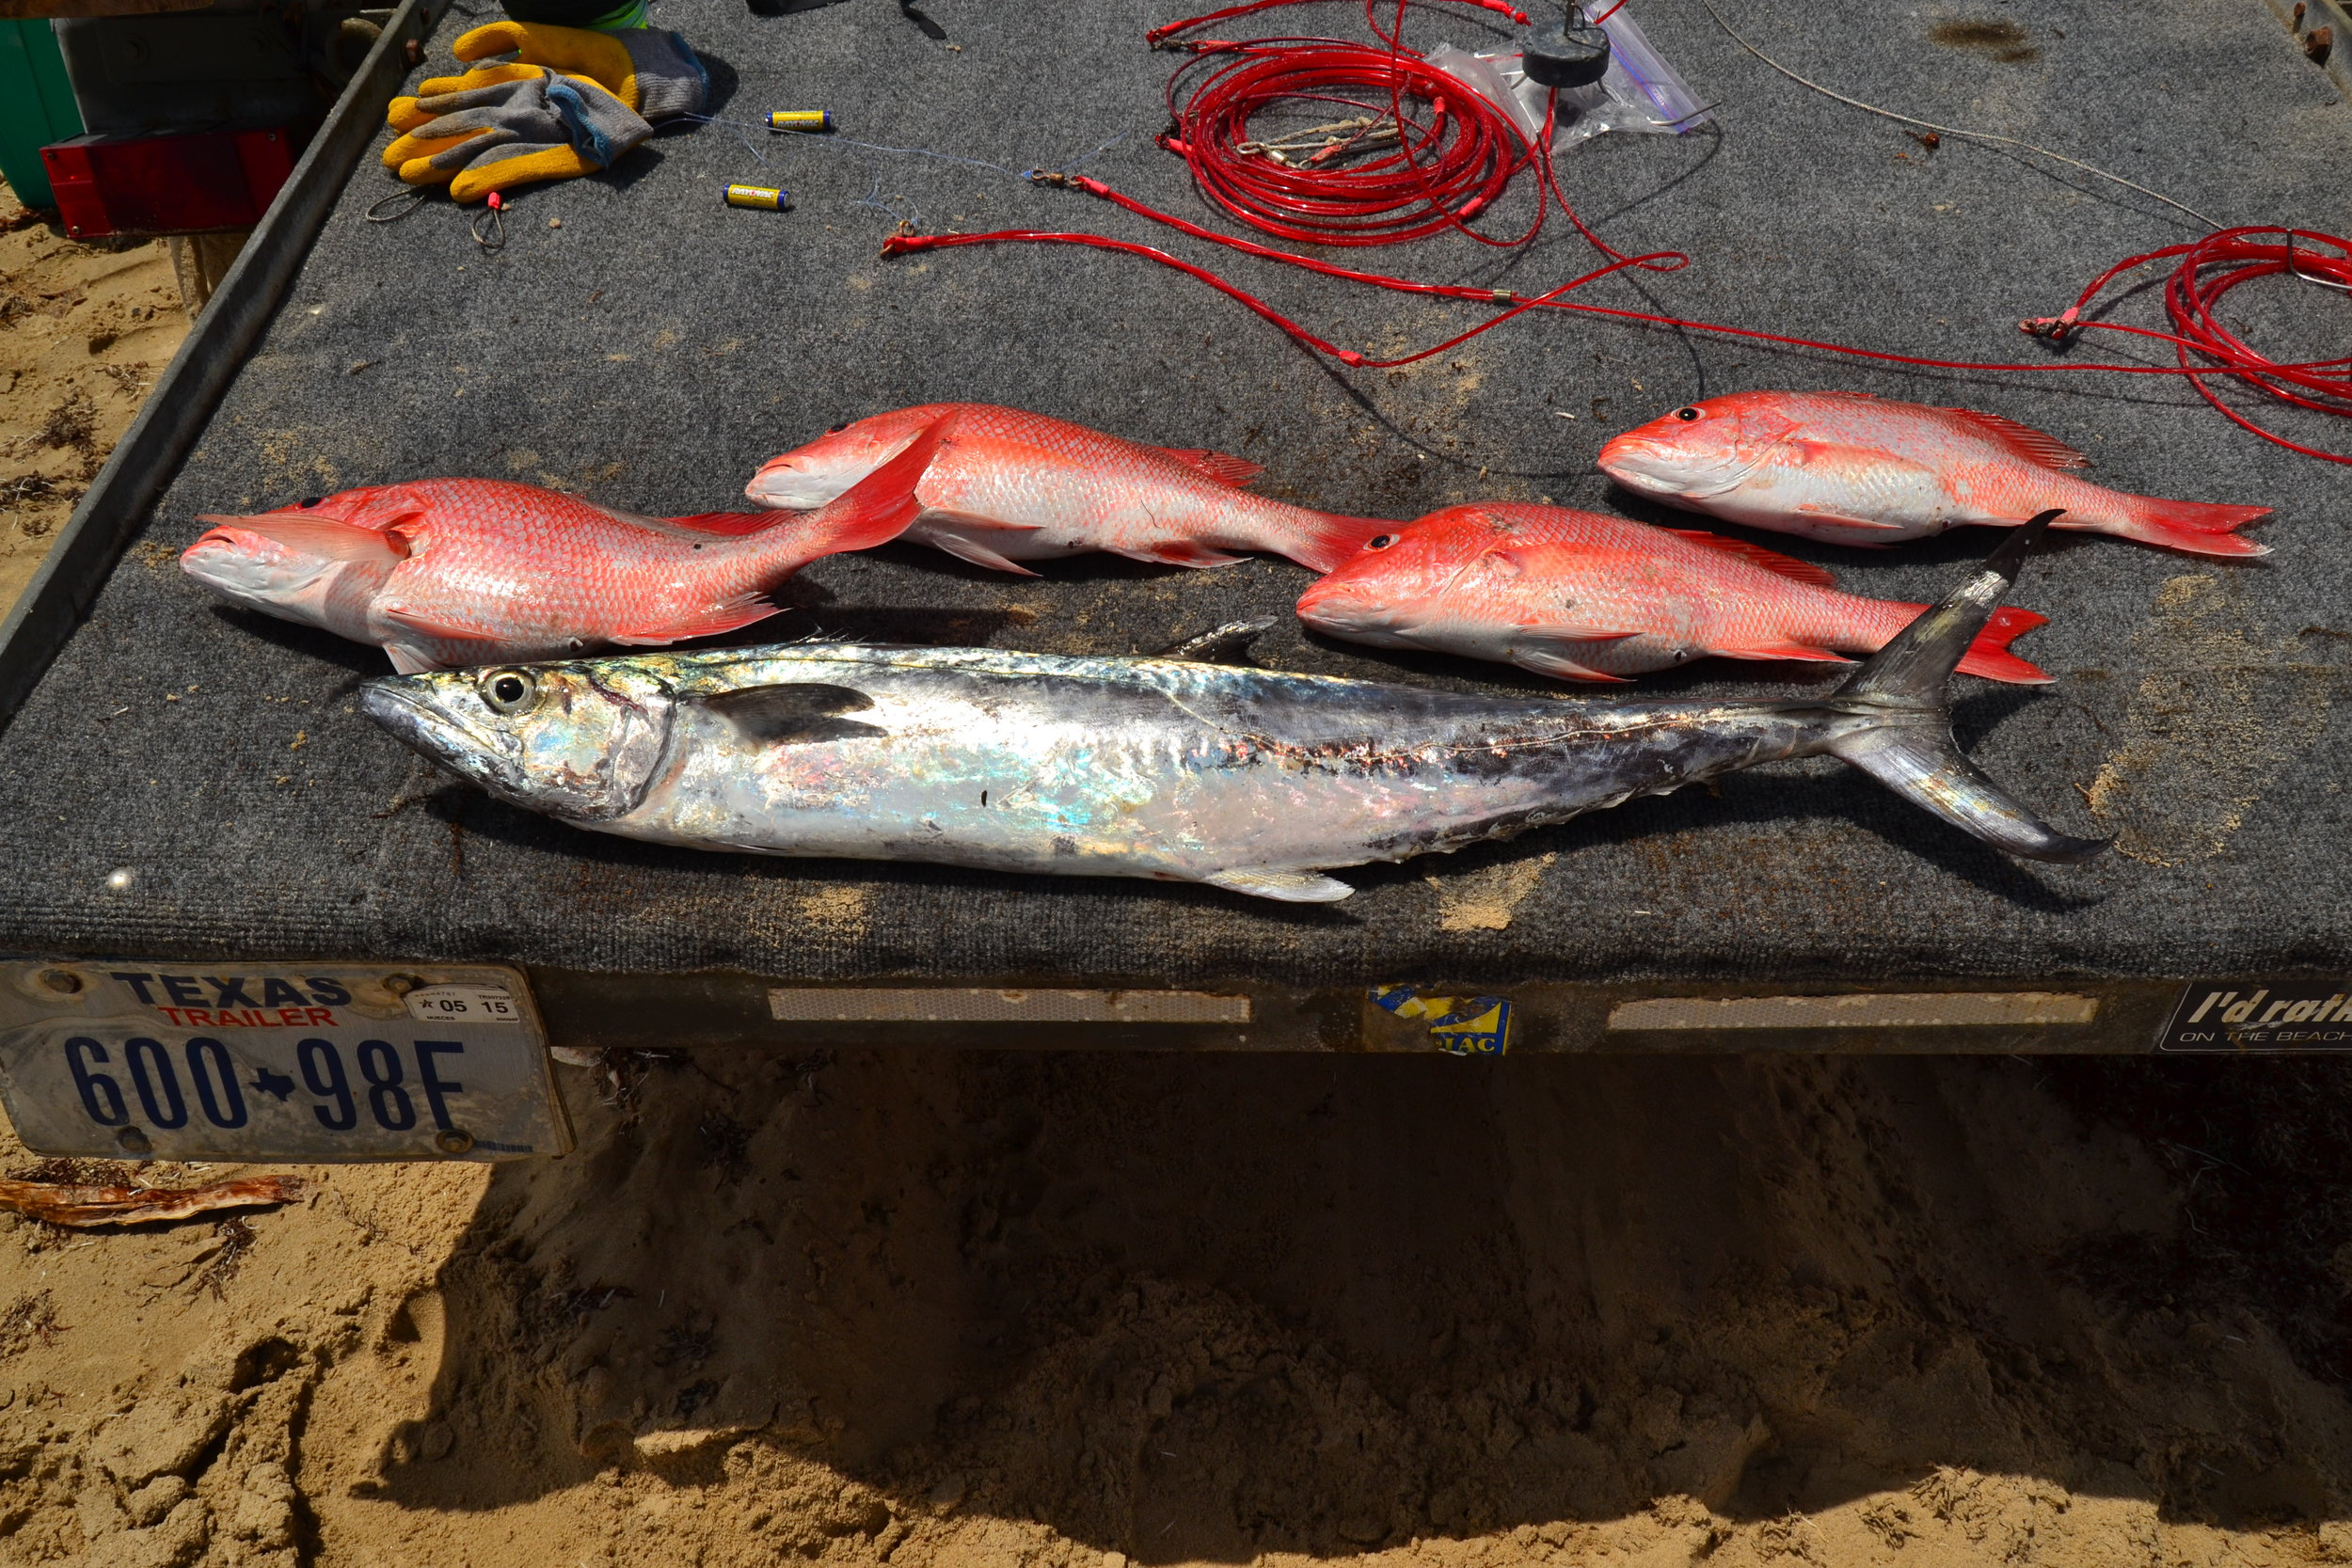 King Mackerel and limit of red snapper